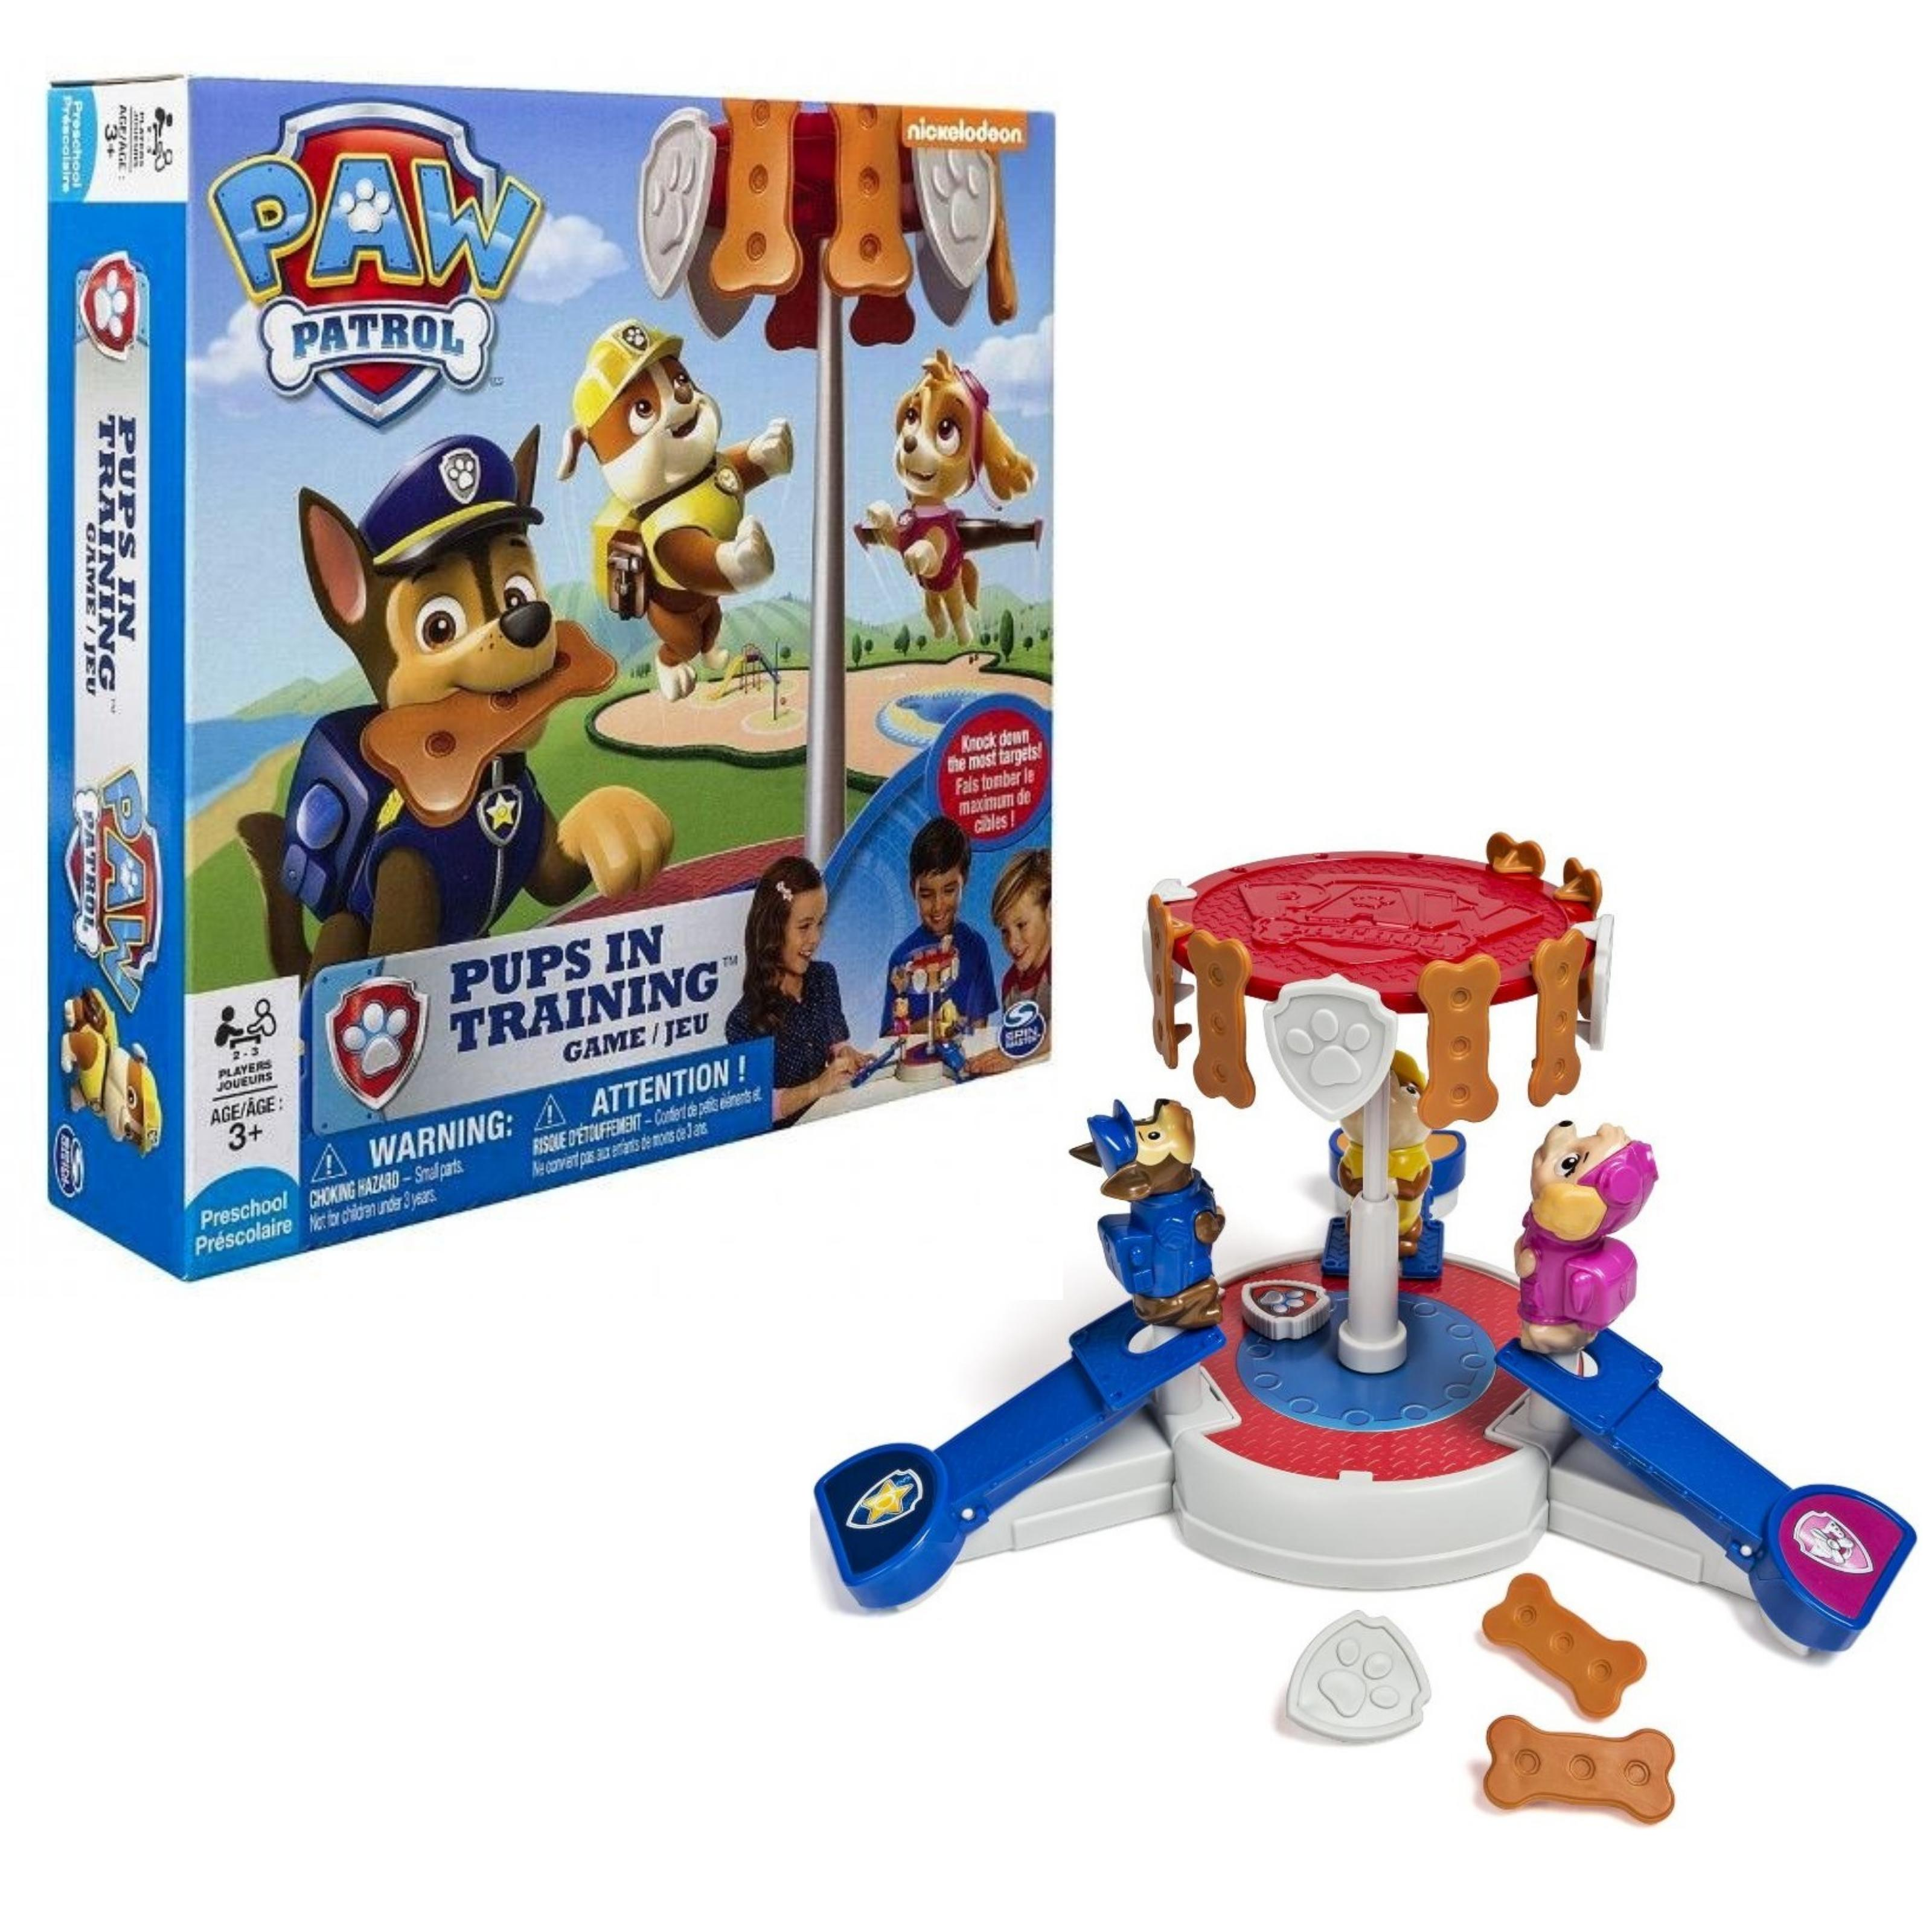 Paw Patrol Pups In Training Game c5e95bdcb4